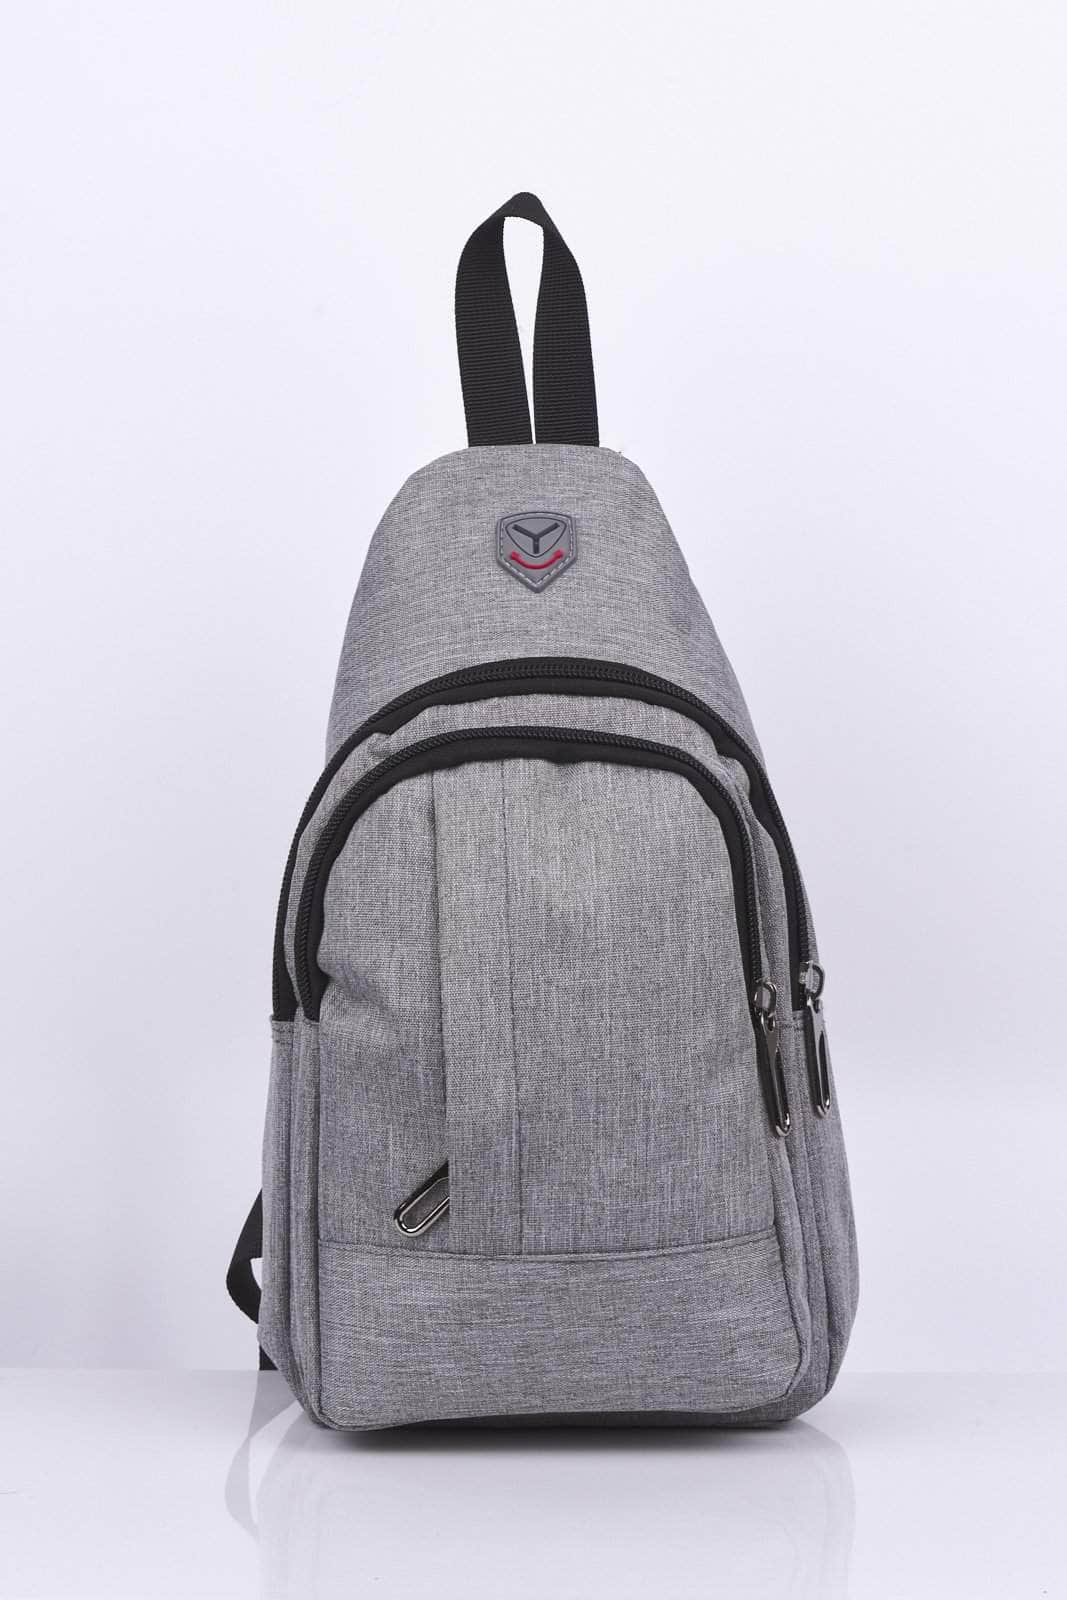 Unisex Grey Sports Bum Bag